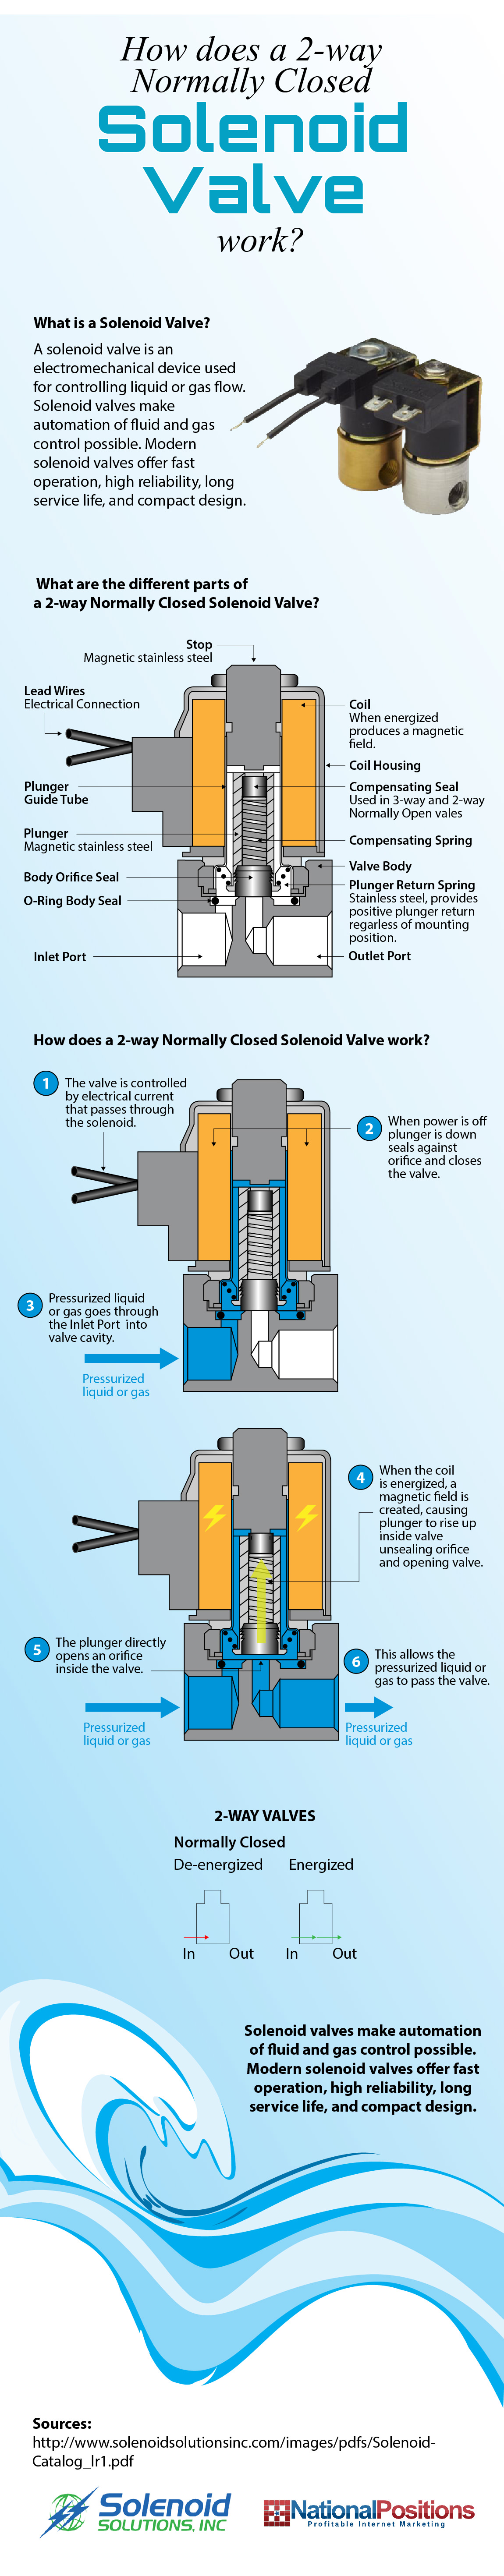 How A 2-Way Normally Closed Solenoid Valve Works | Solenoid Solutions